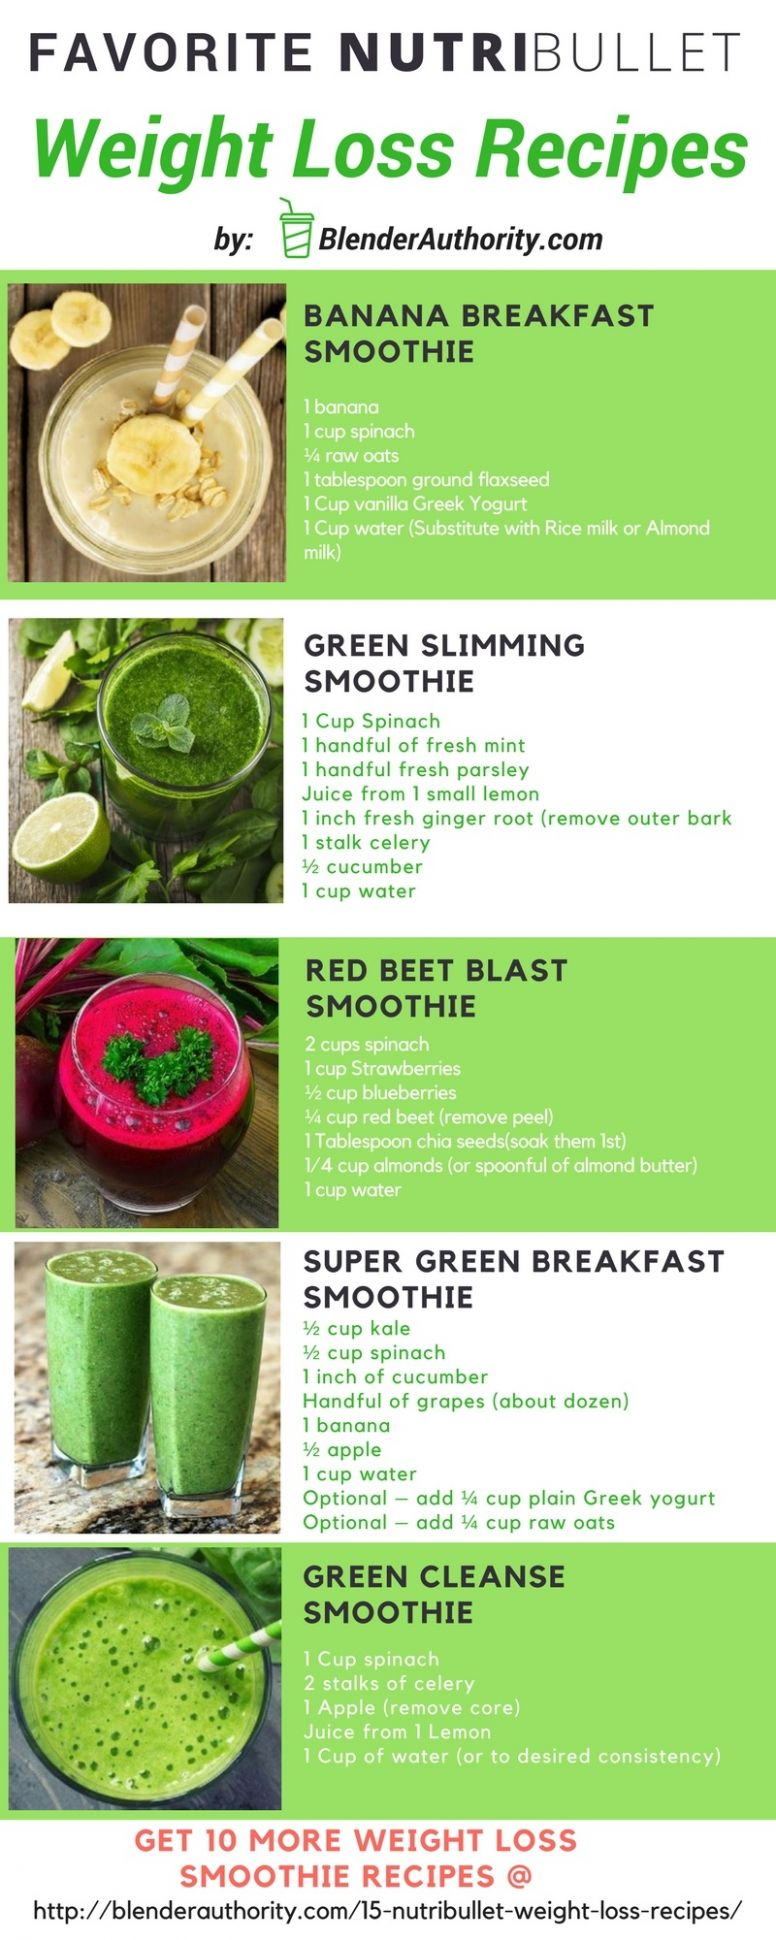 11 Nutribullet Weight Loss Recipes - Smoothie Recipes For Weight Loss Lunch